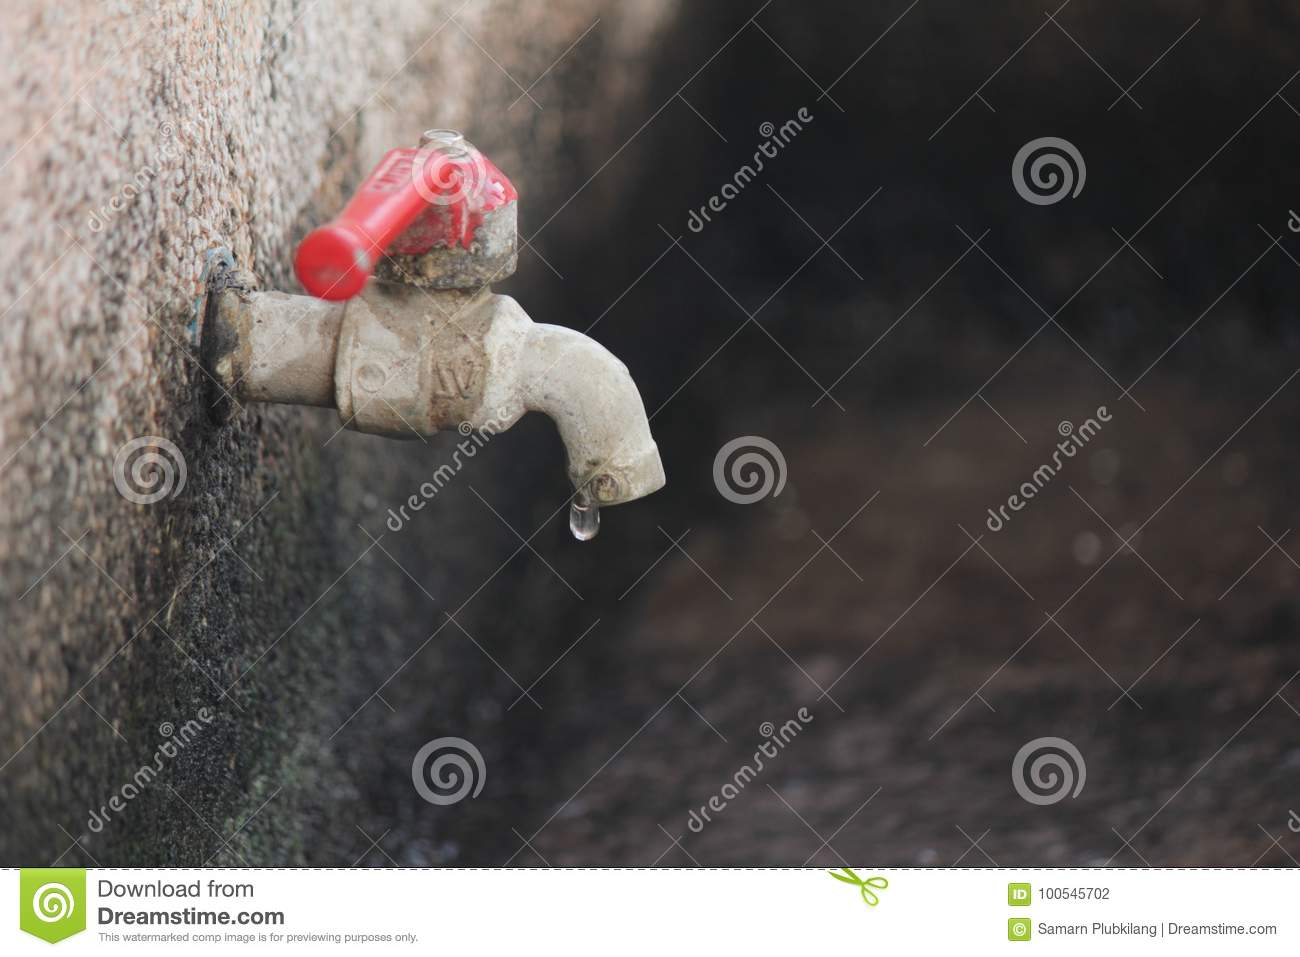 Wall mounted faucet stock photo. Image of outdoor, wall - 100545702